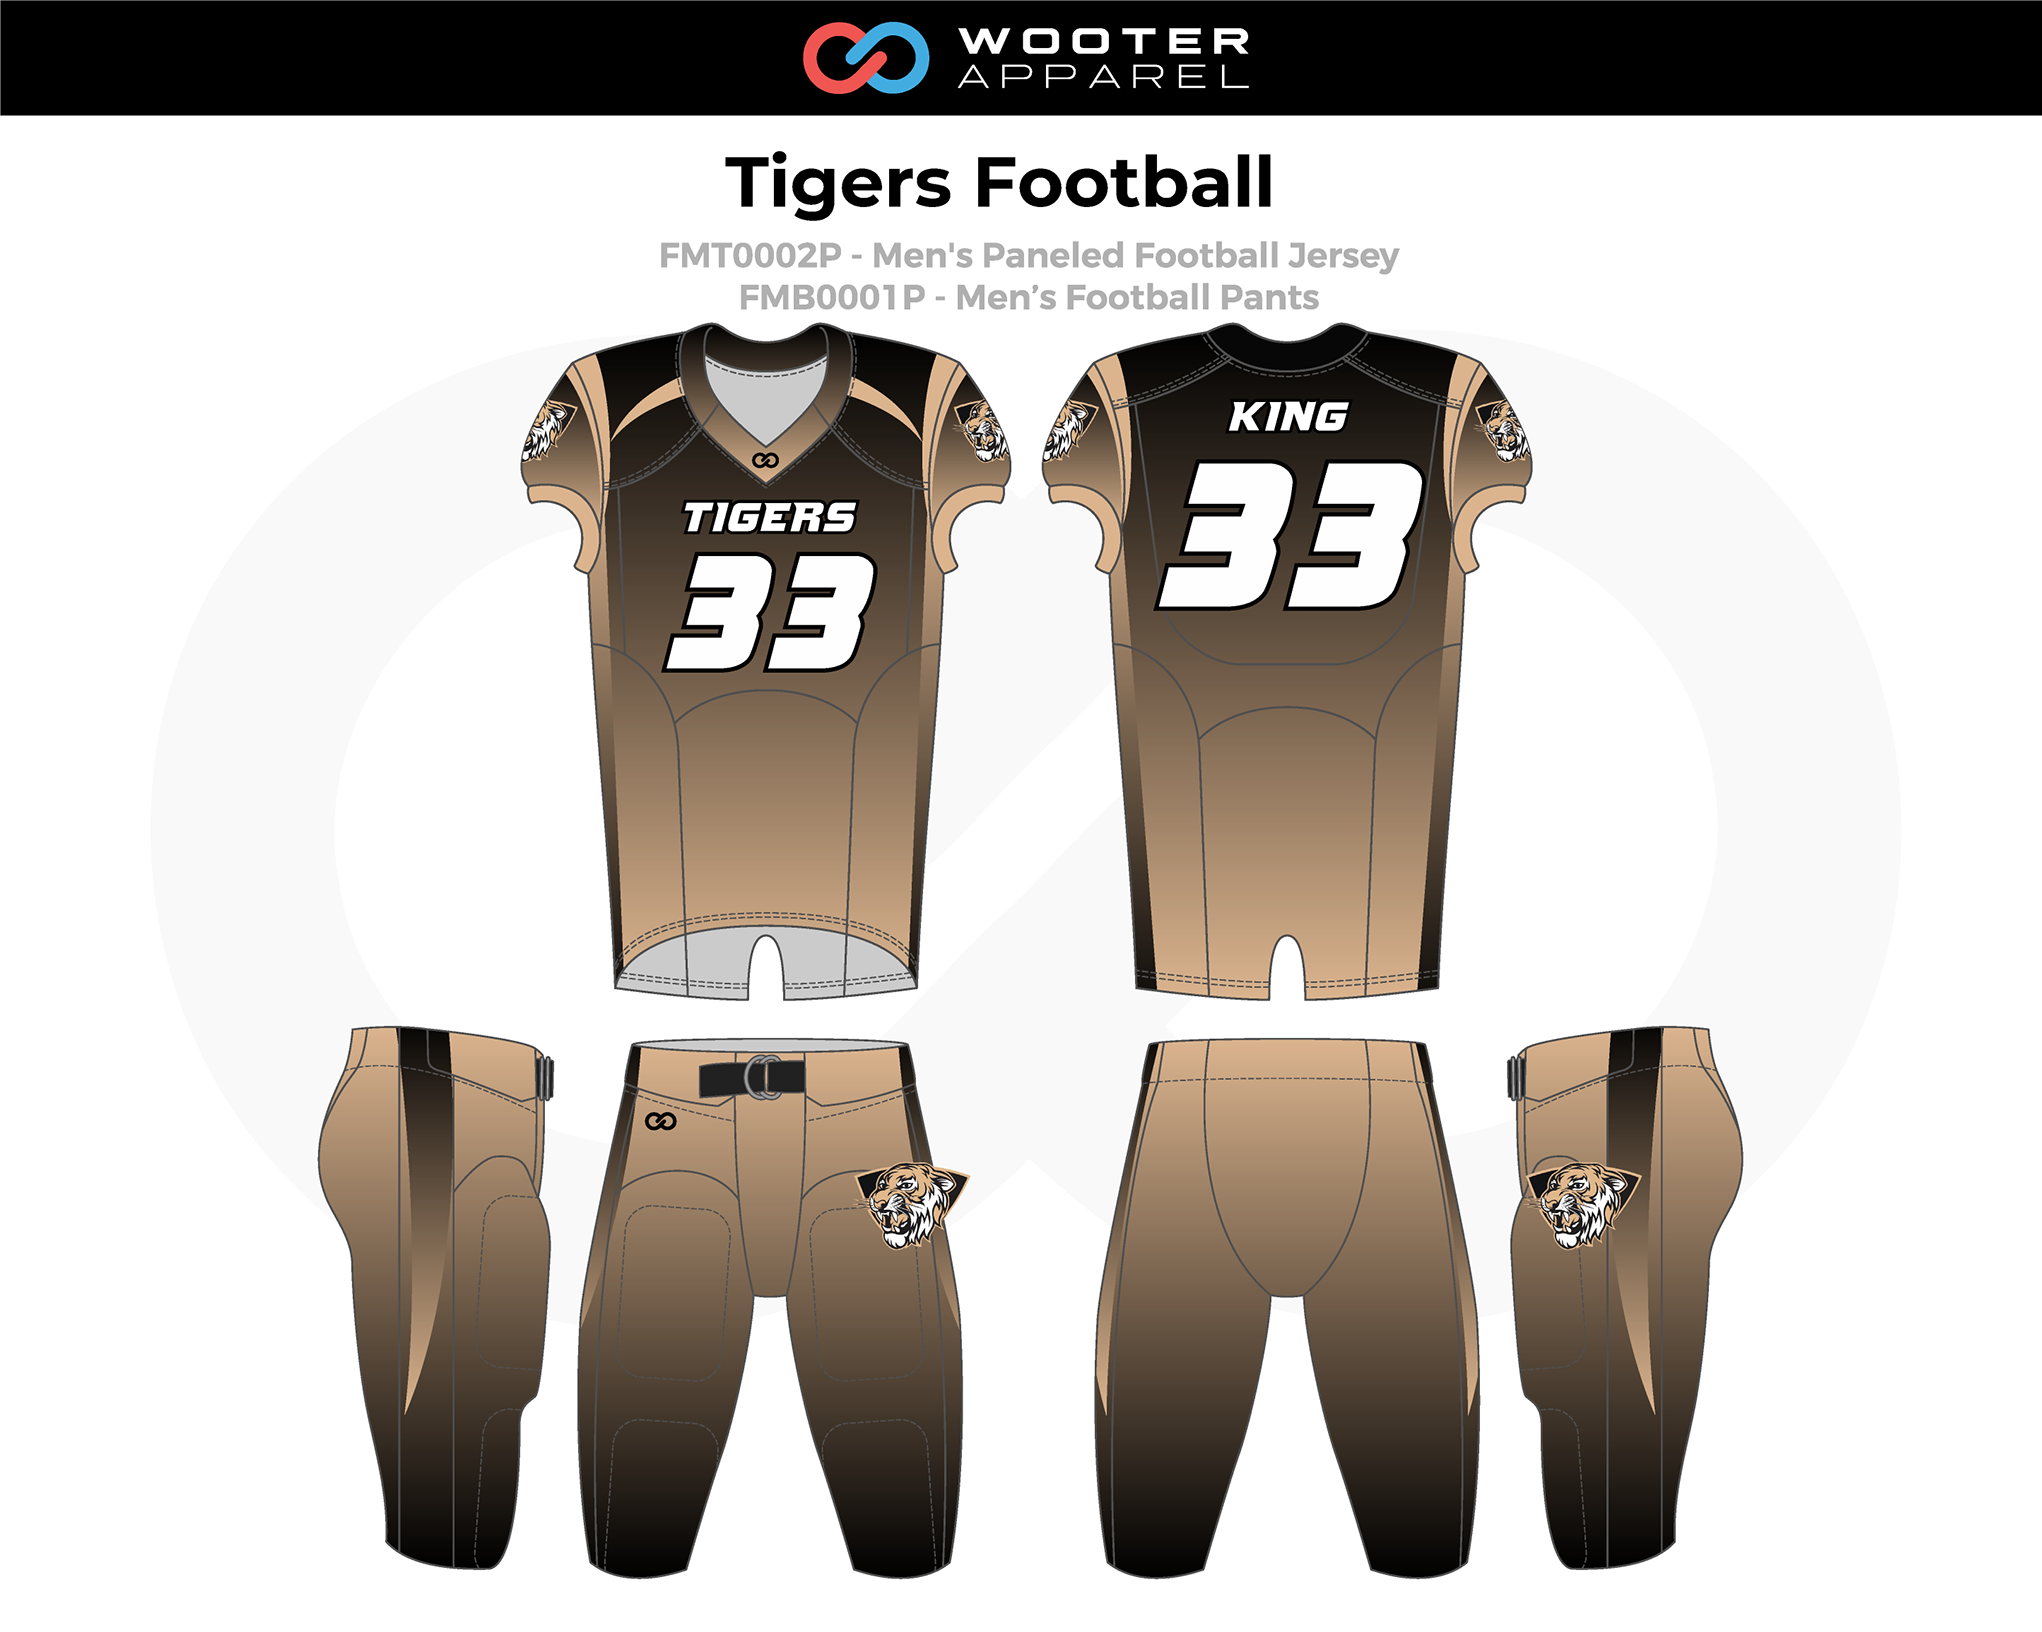 TIGERS Brown White Men's Football Uniforms, Jerseys, and Pants